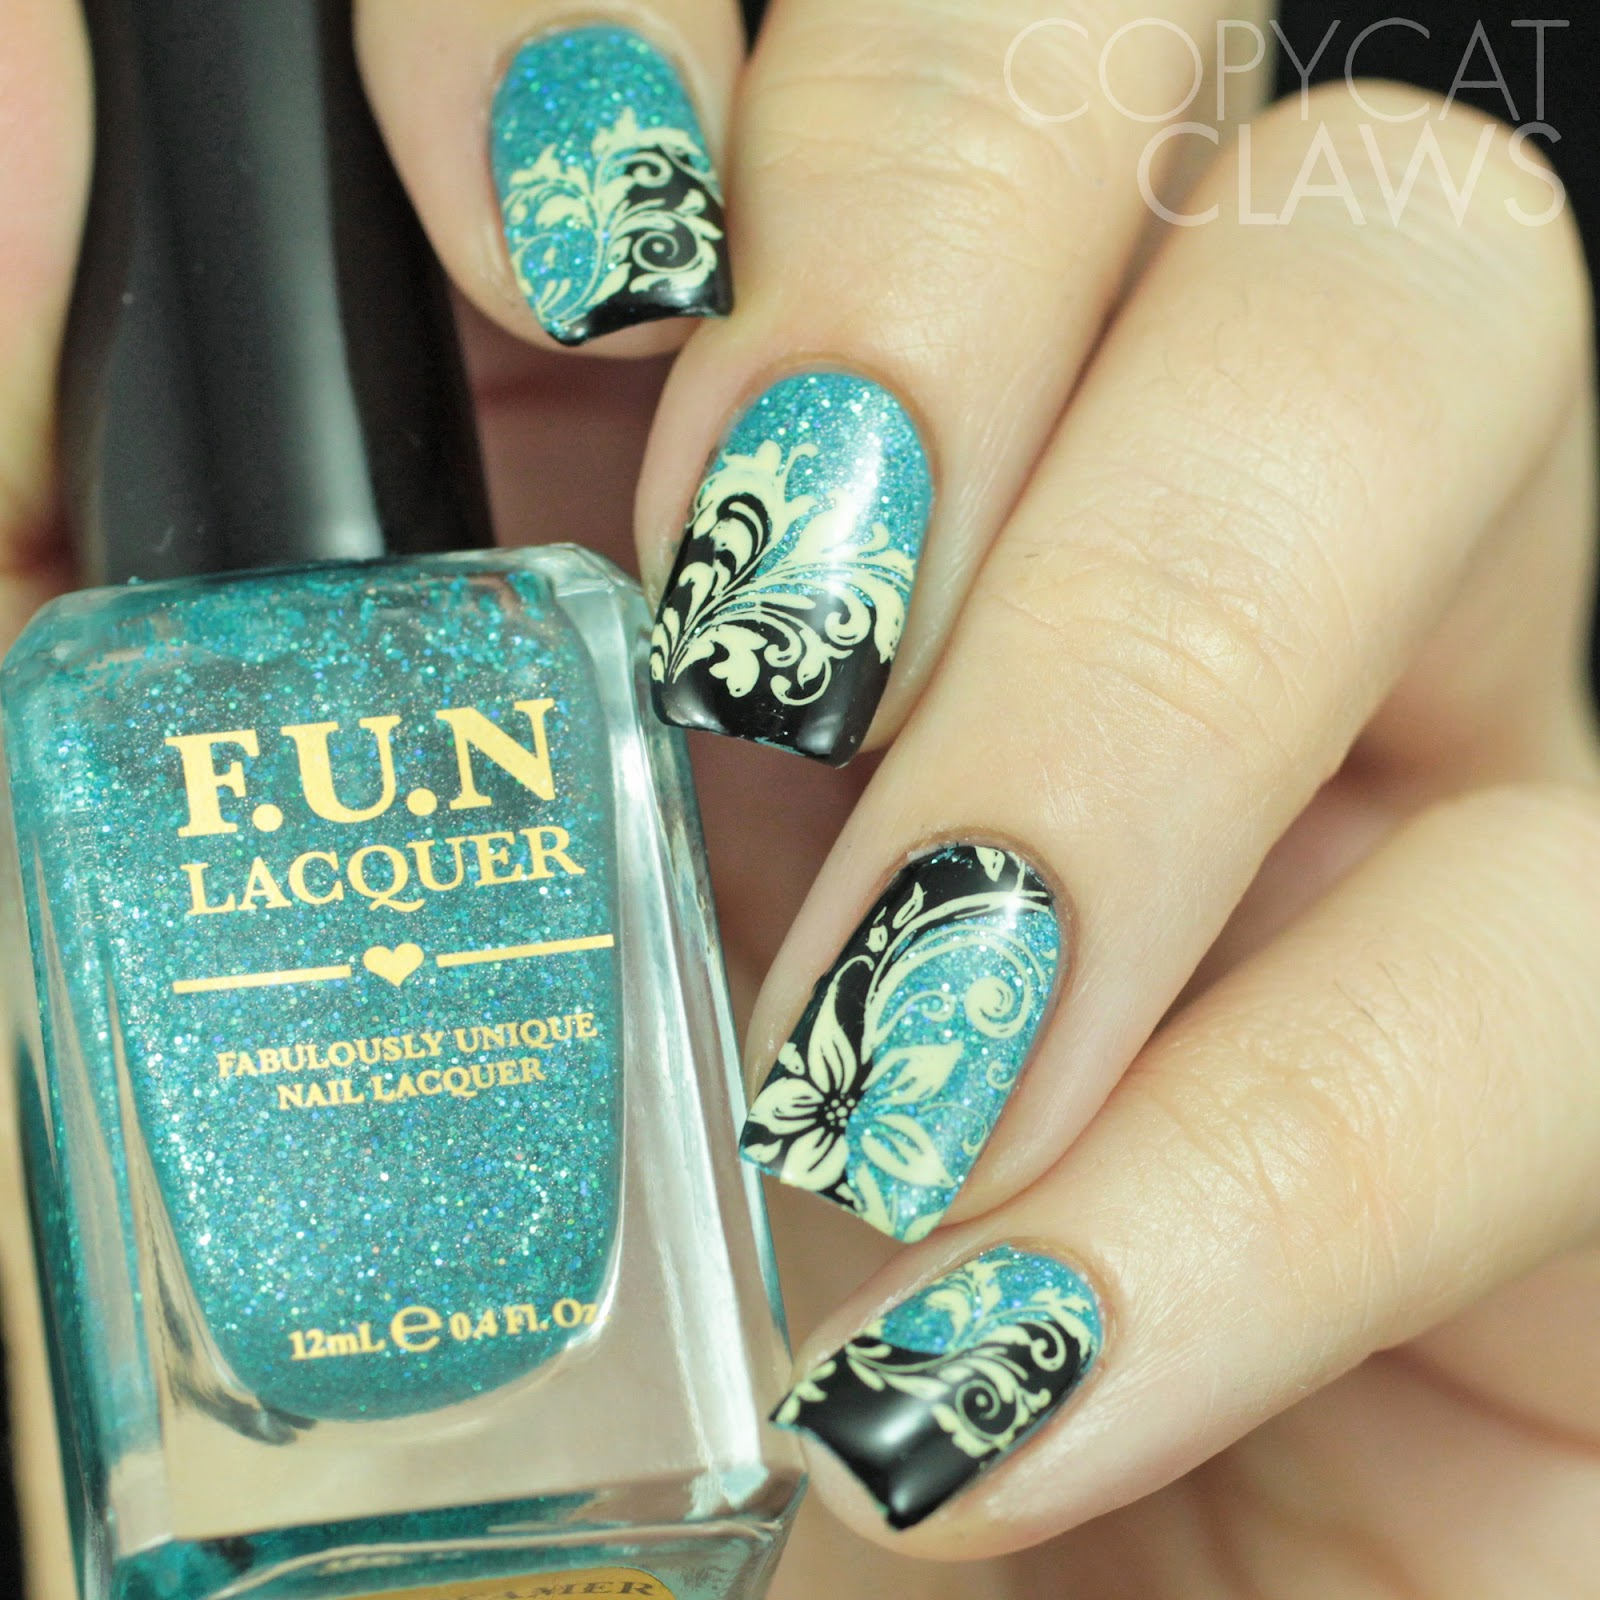 Copycat Claws: Lina Nail Art Supplies Totally Negative and Twirls ...